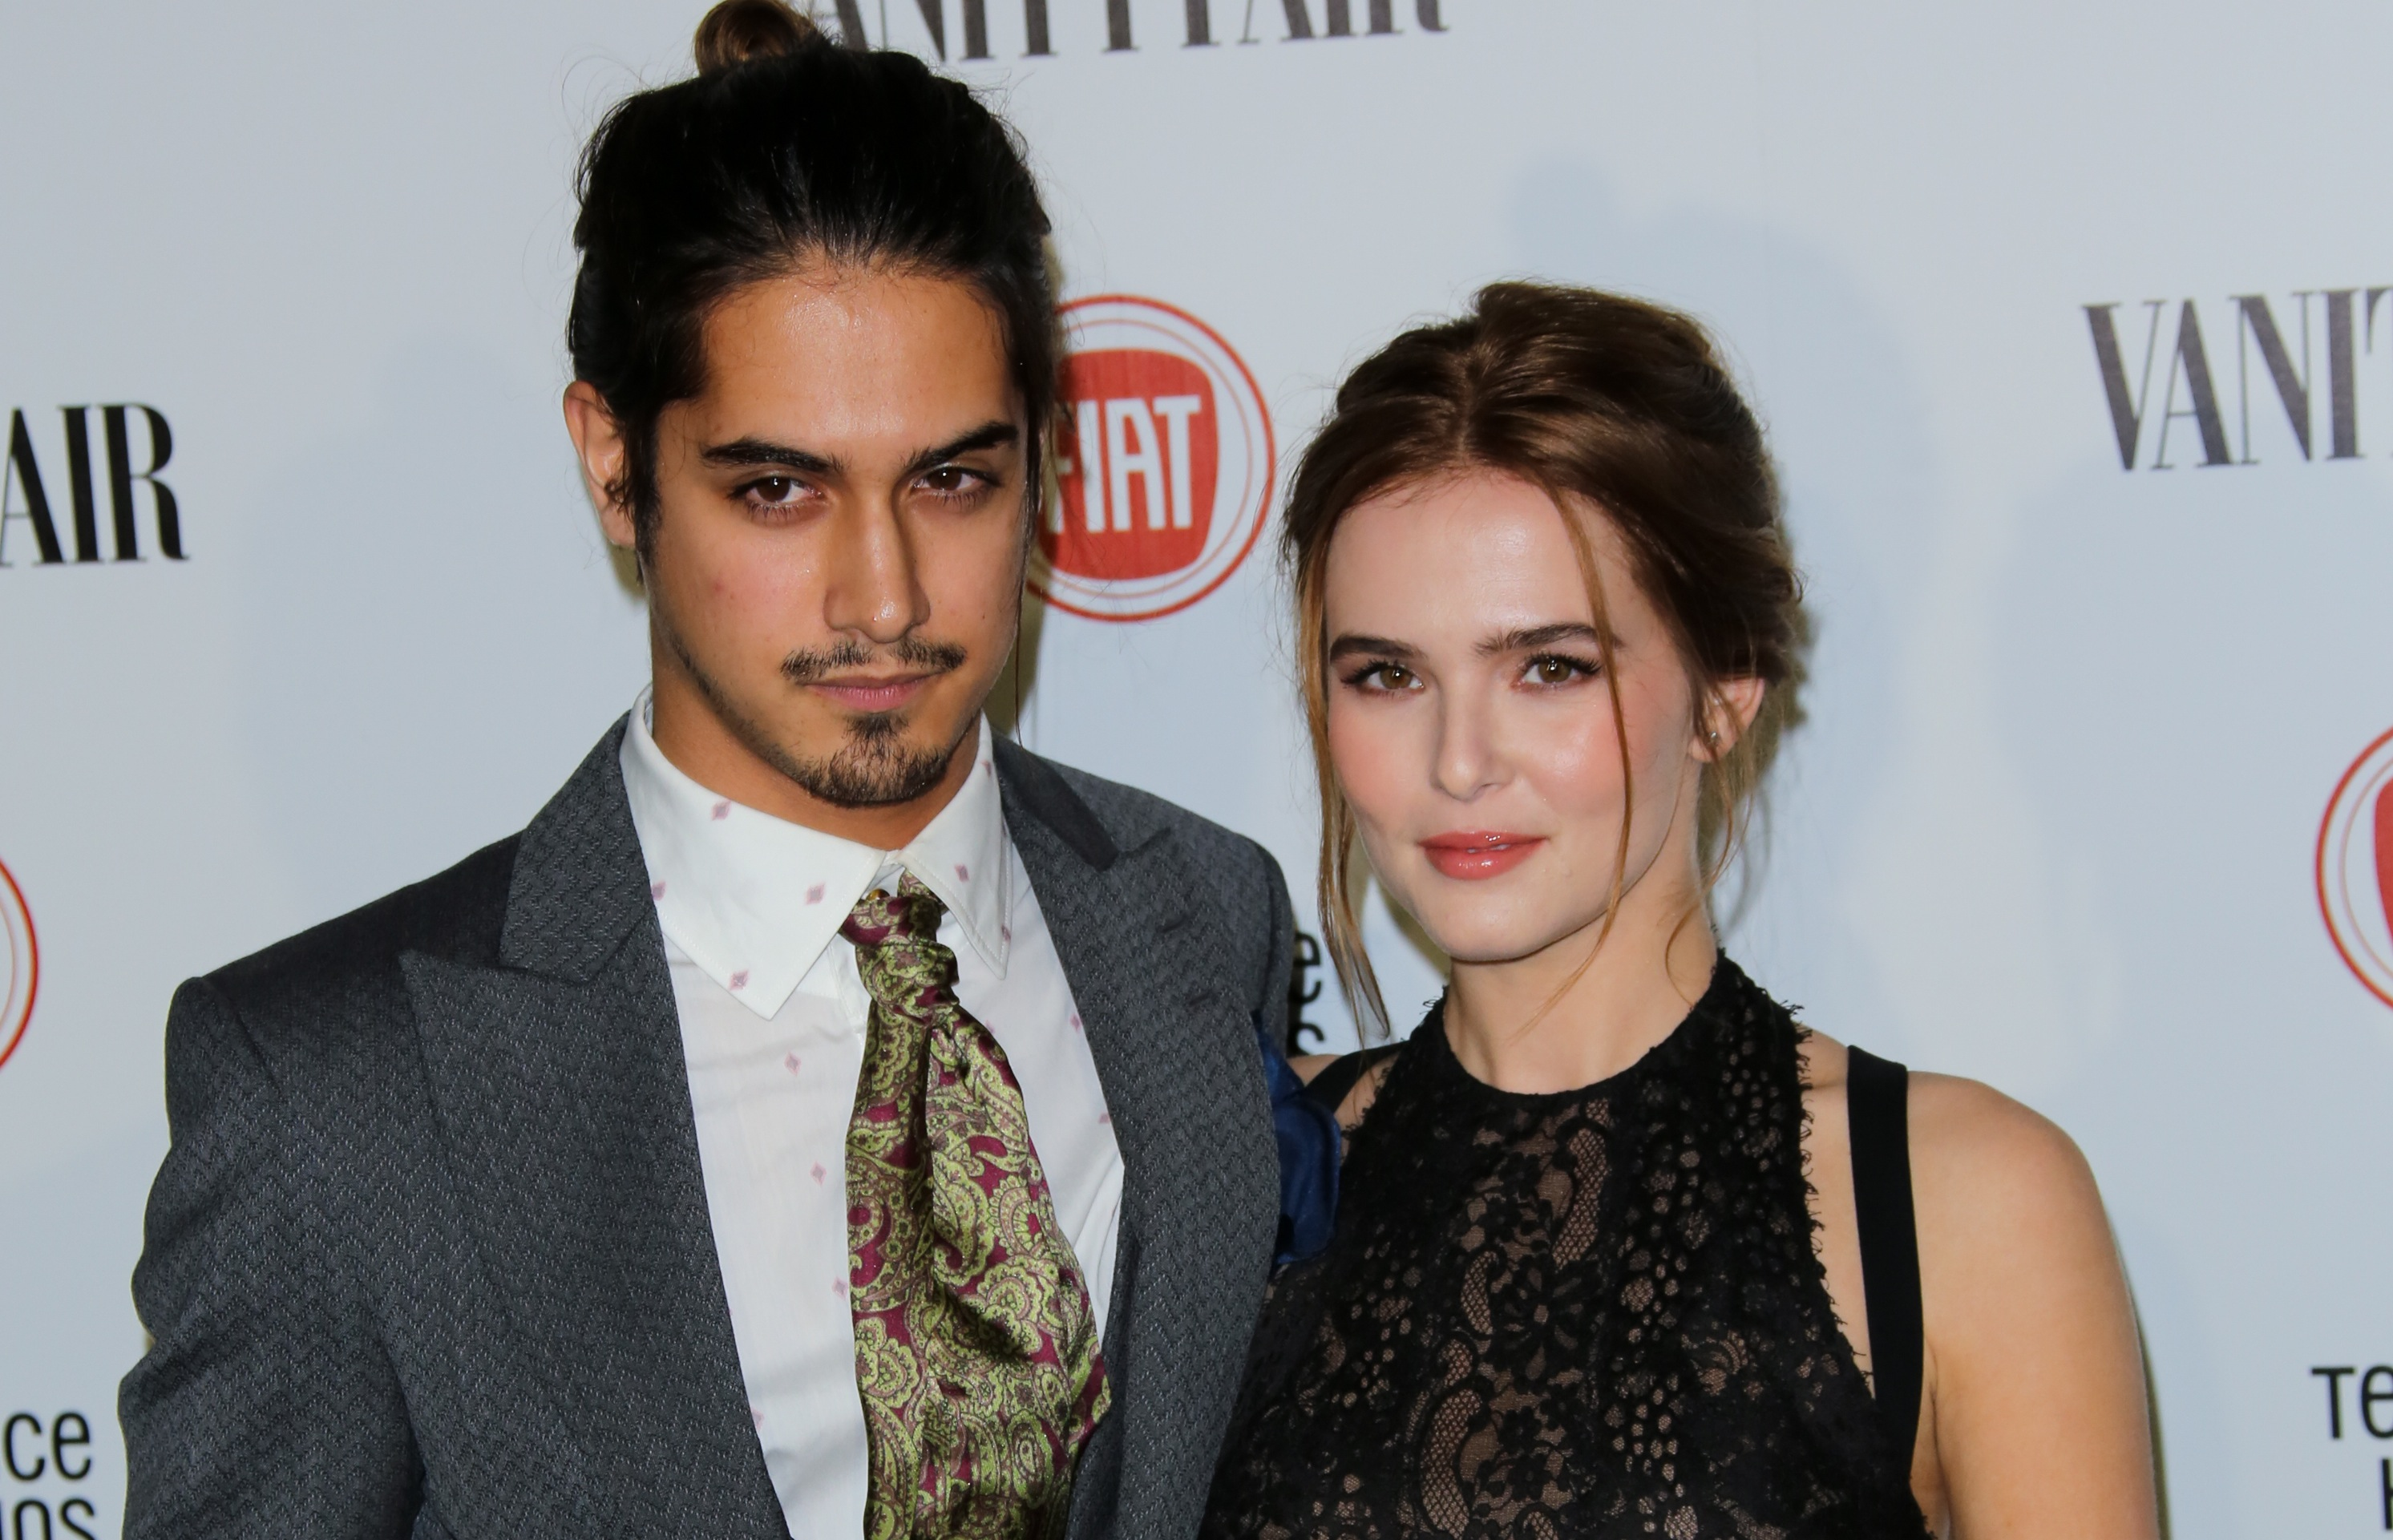 Who is avan jogia currently hookup 2018